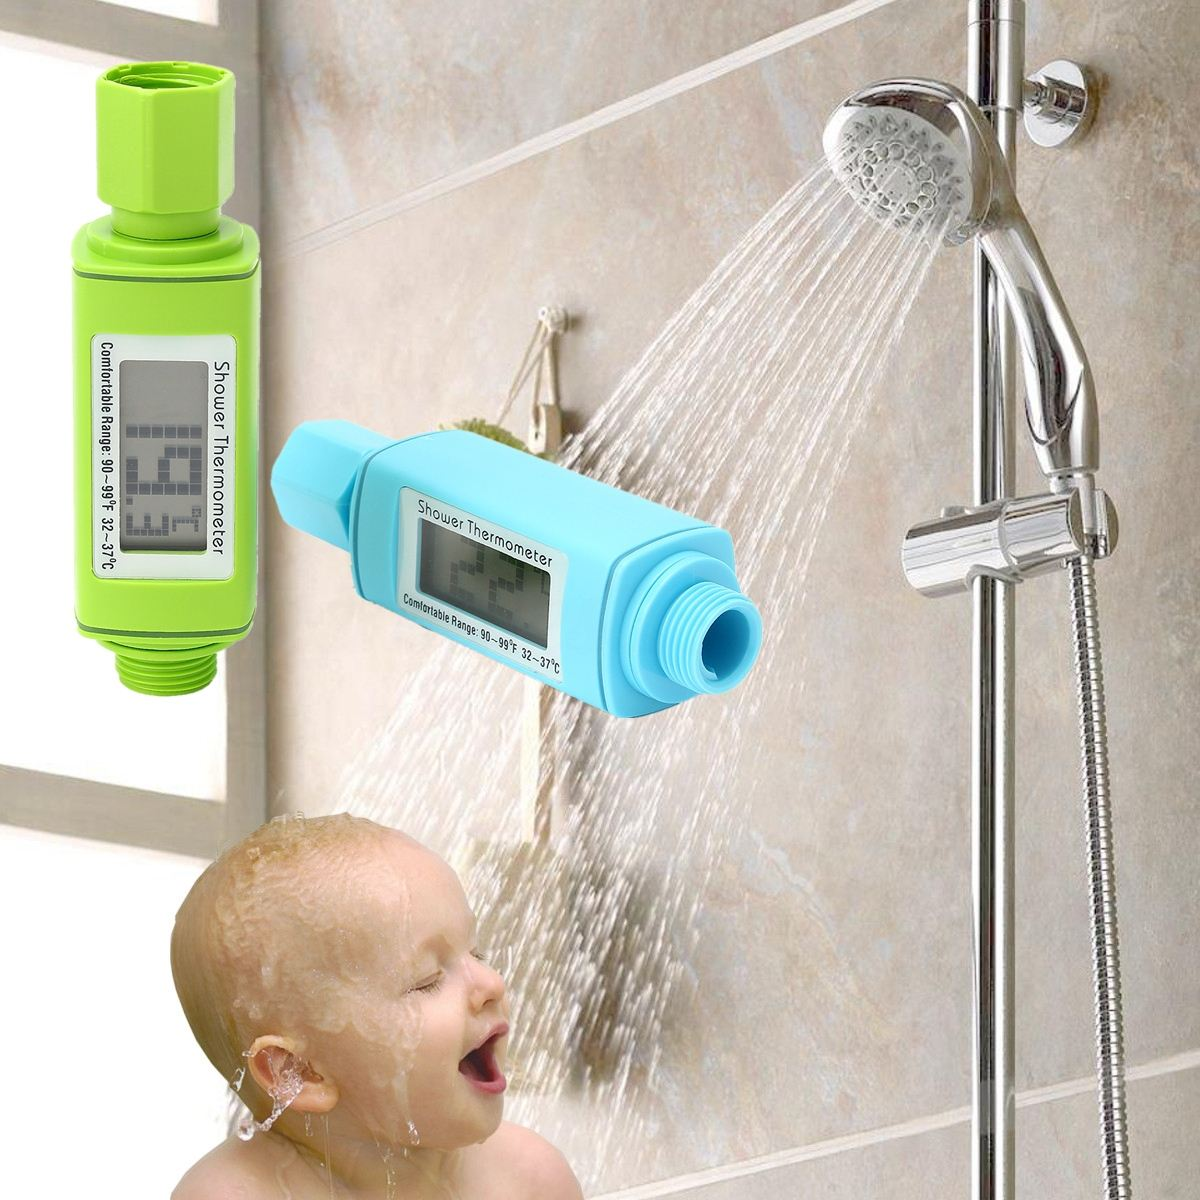 Loskii LM-303 Digital Shower Head Water Thermometer Water Temperture Meter Monitor for Baby Care